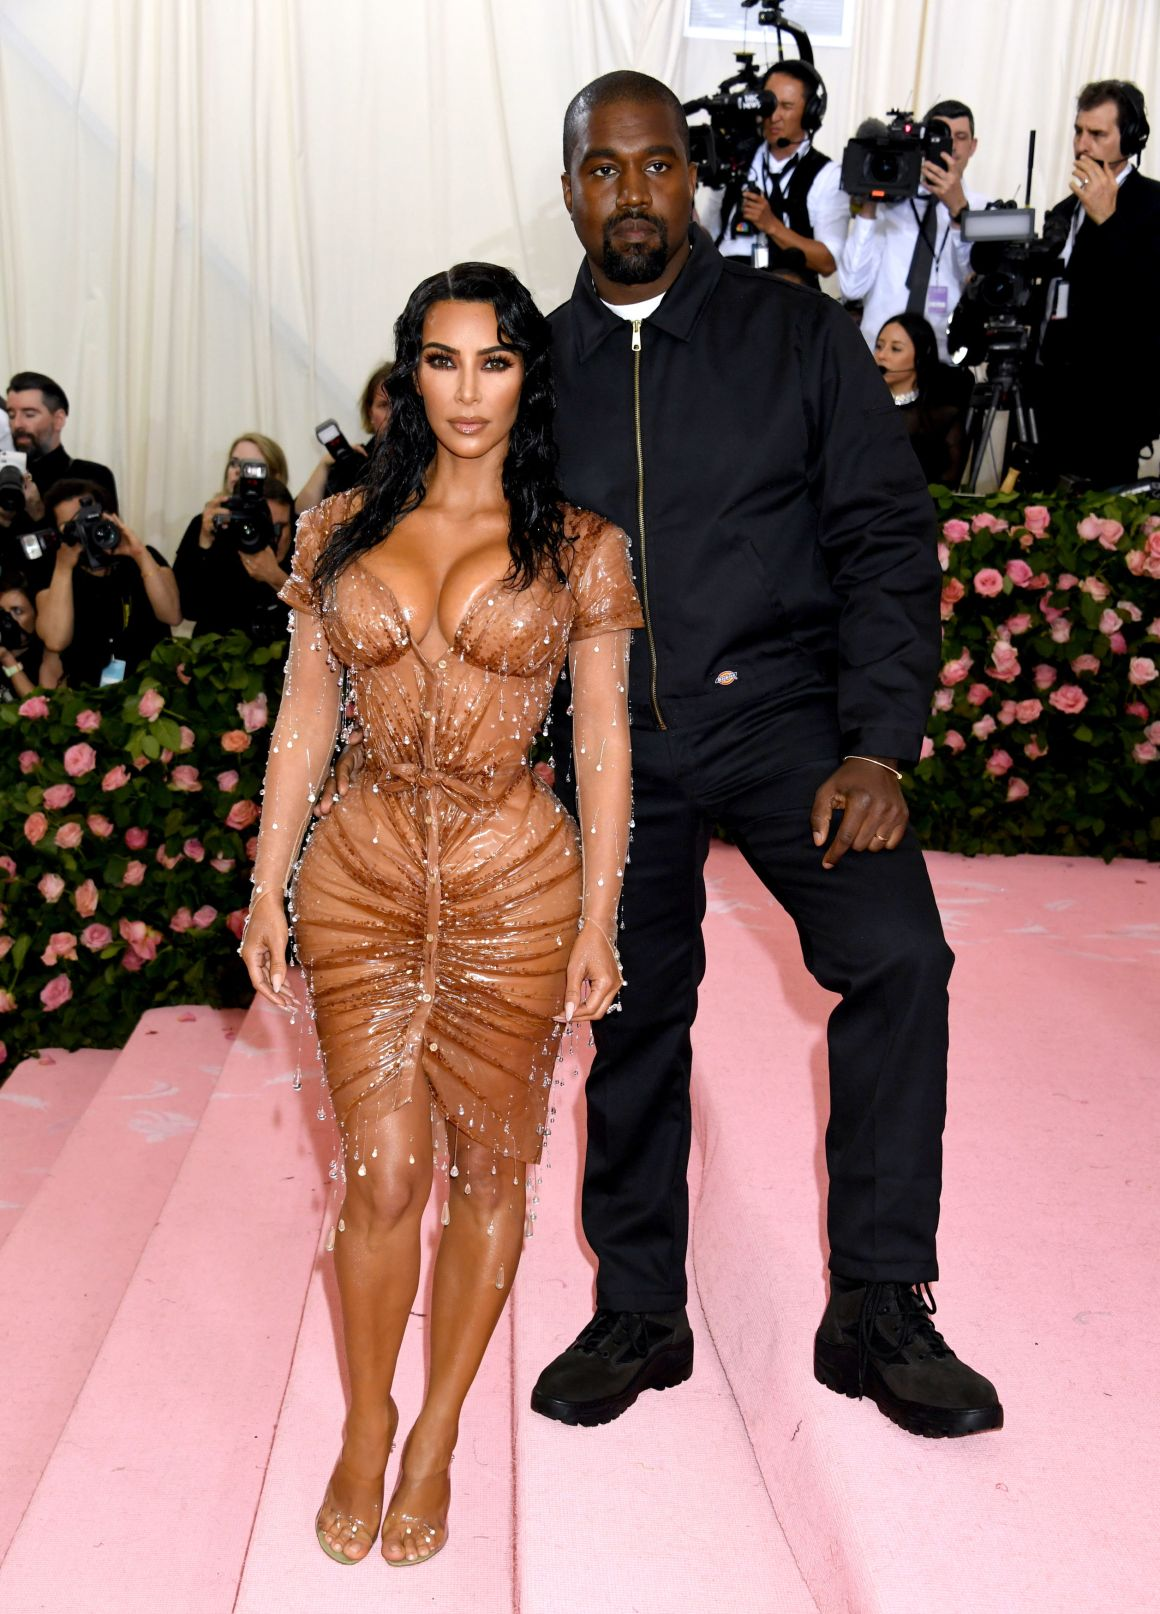 Kanye reportedly has not plans to live in Los Angeles following the divorce